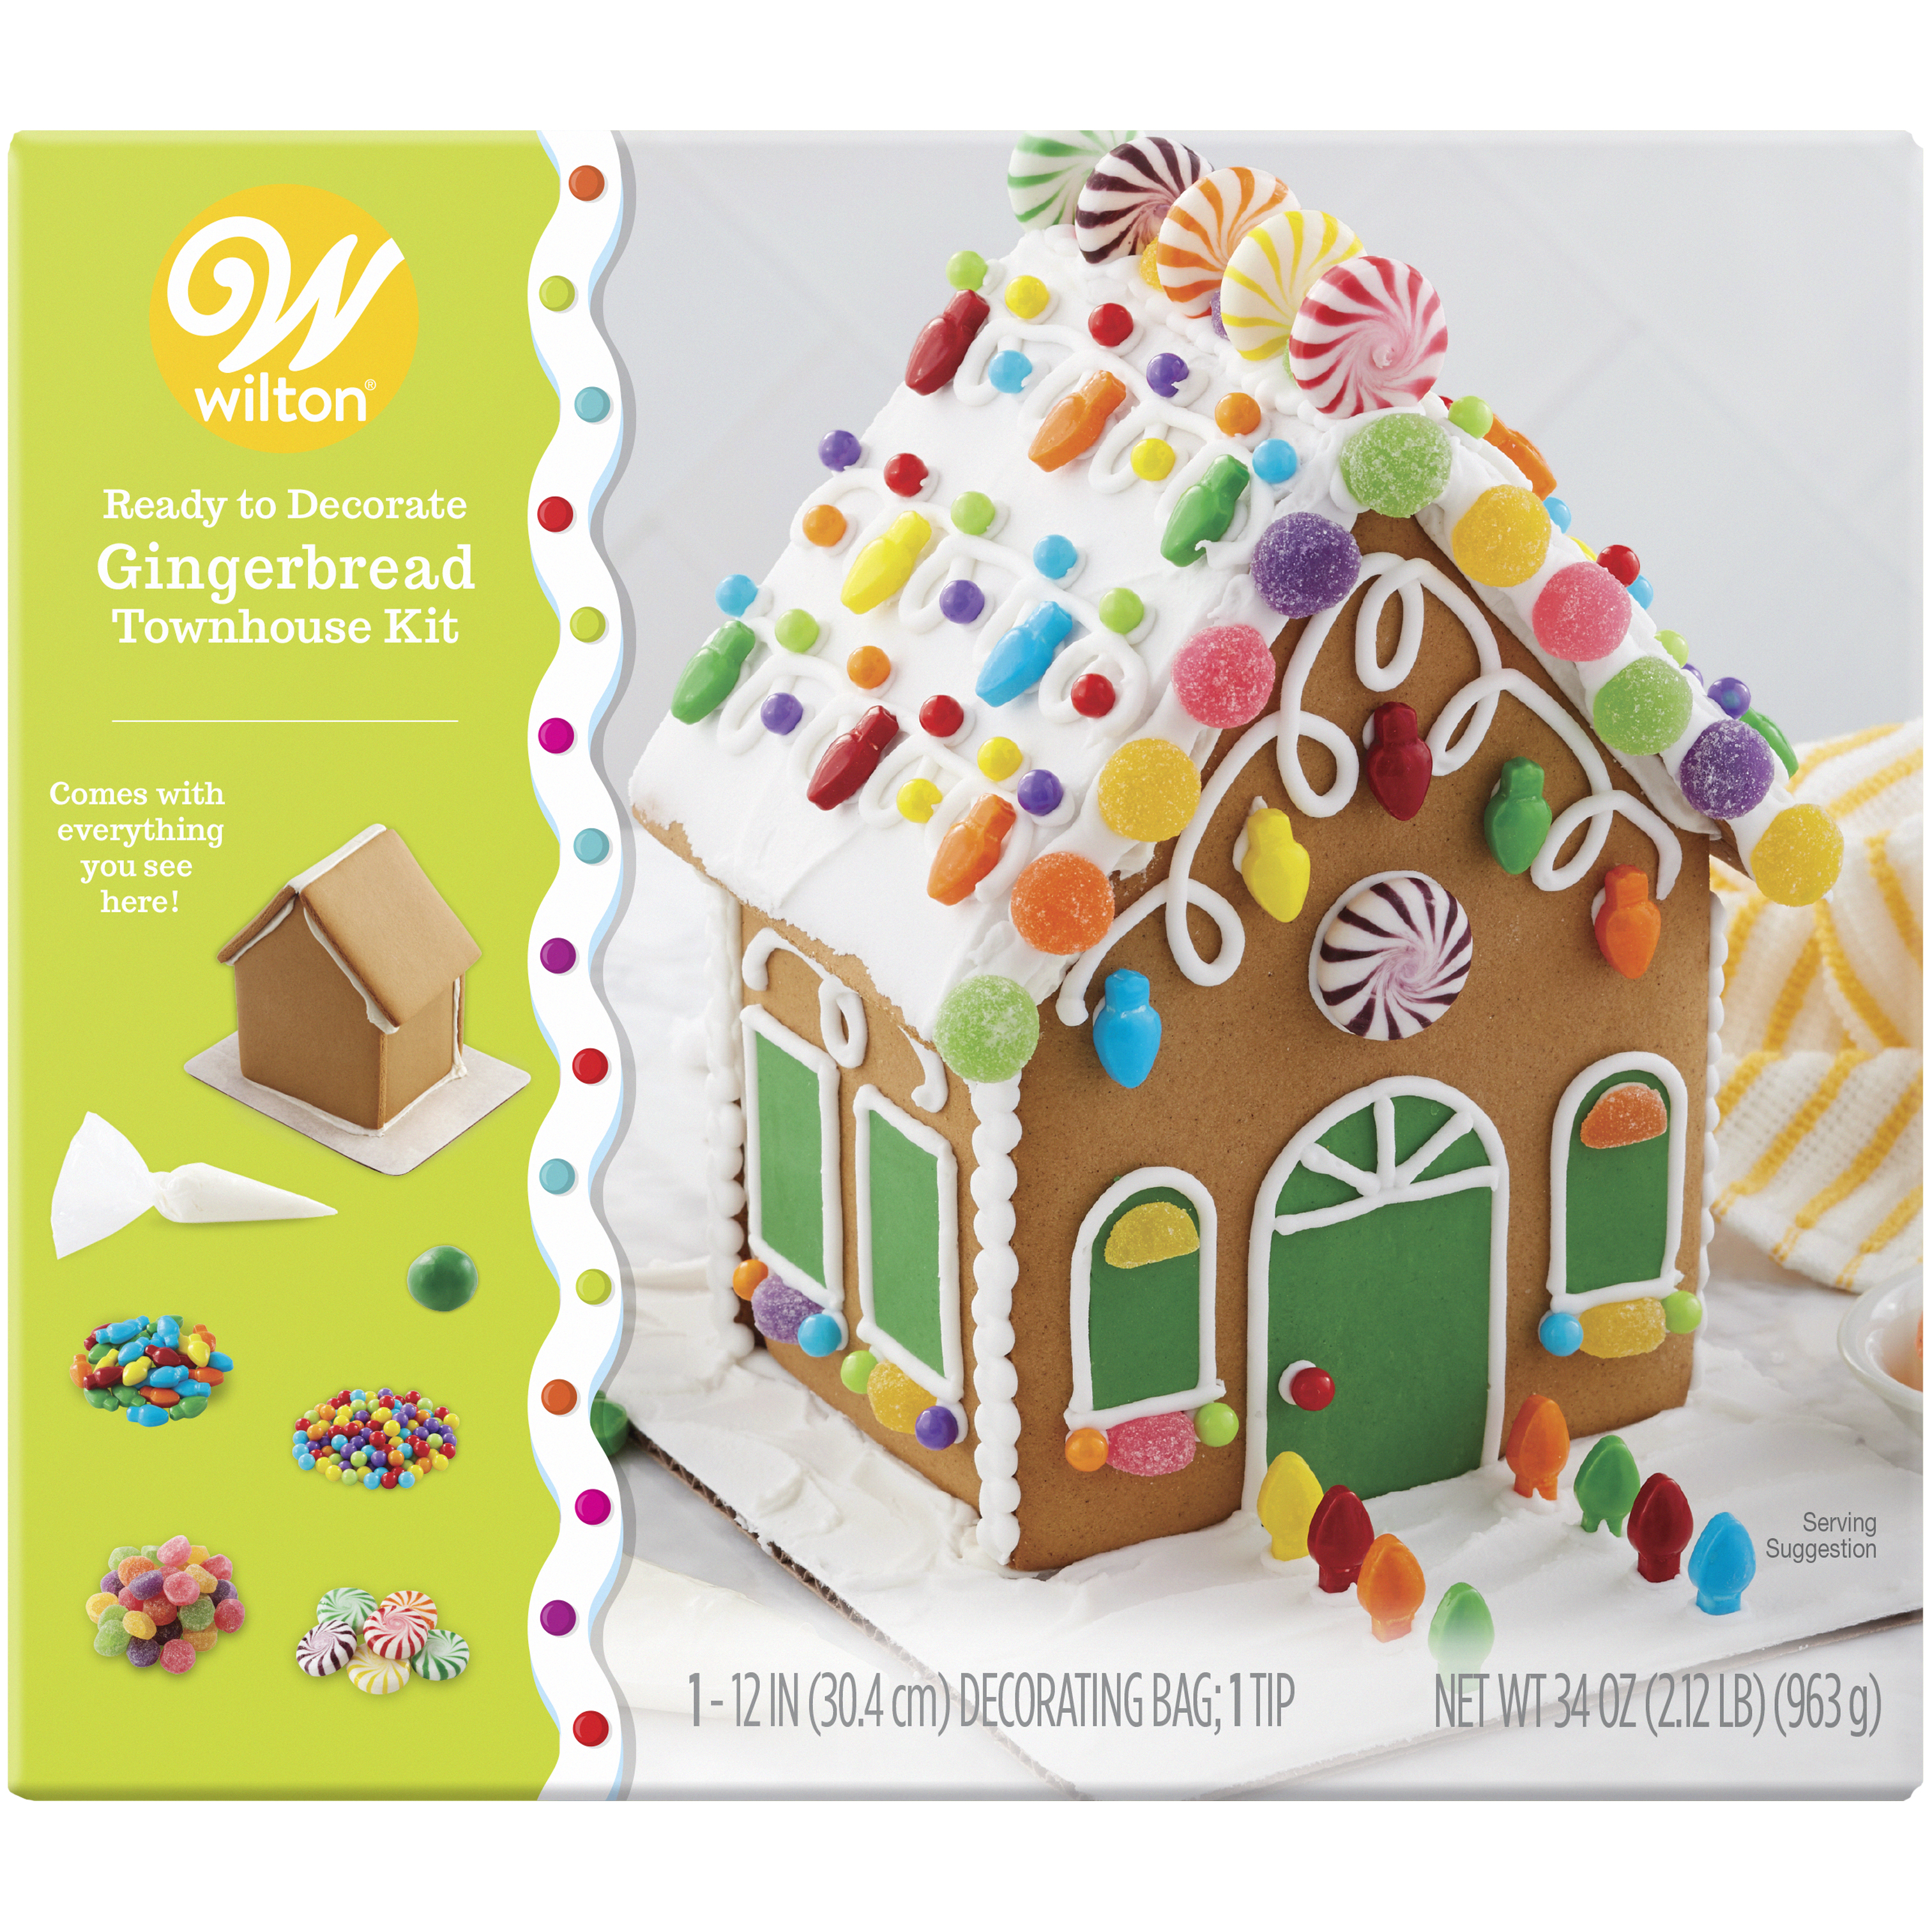 Wilton Ready-to-Decorate Gingerbread Townhouse Decorating Kit